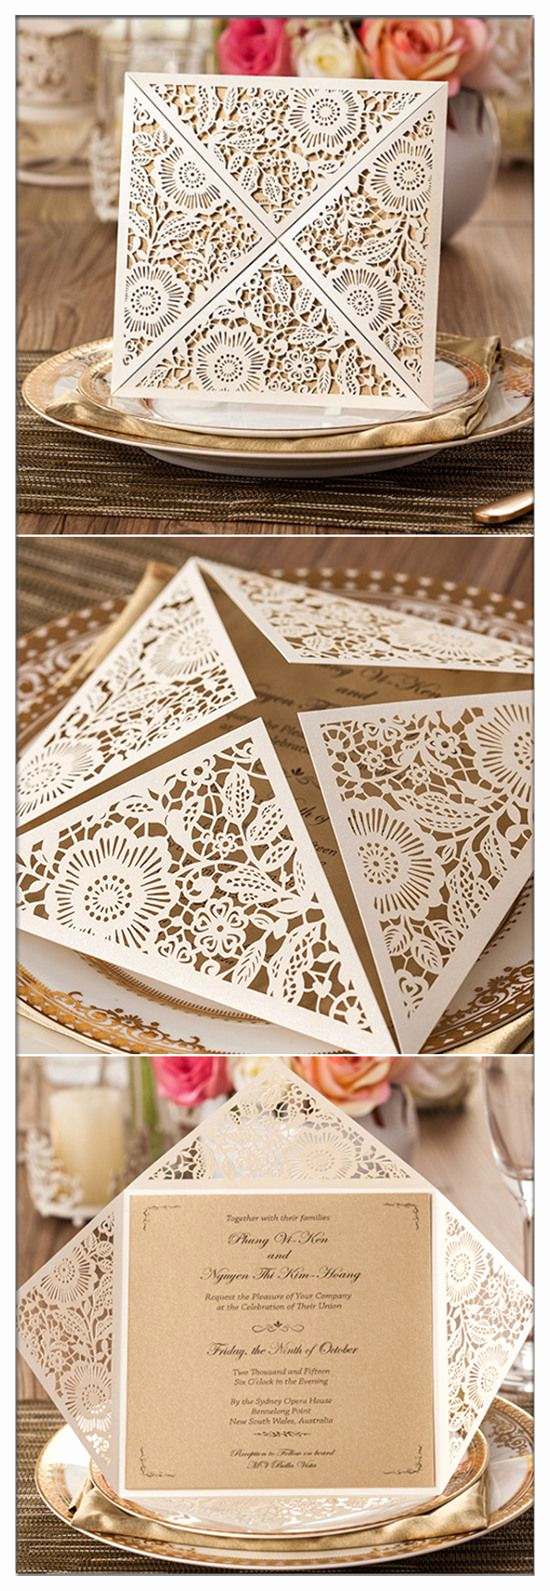 Rustic Wedding Invitation Ideas Luxury 25 Best Ideas About Casual Wedding Invitations On